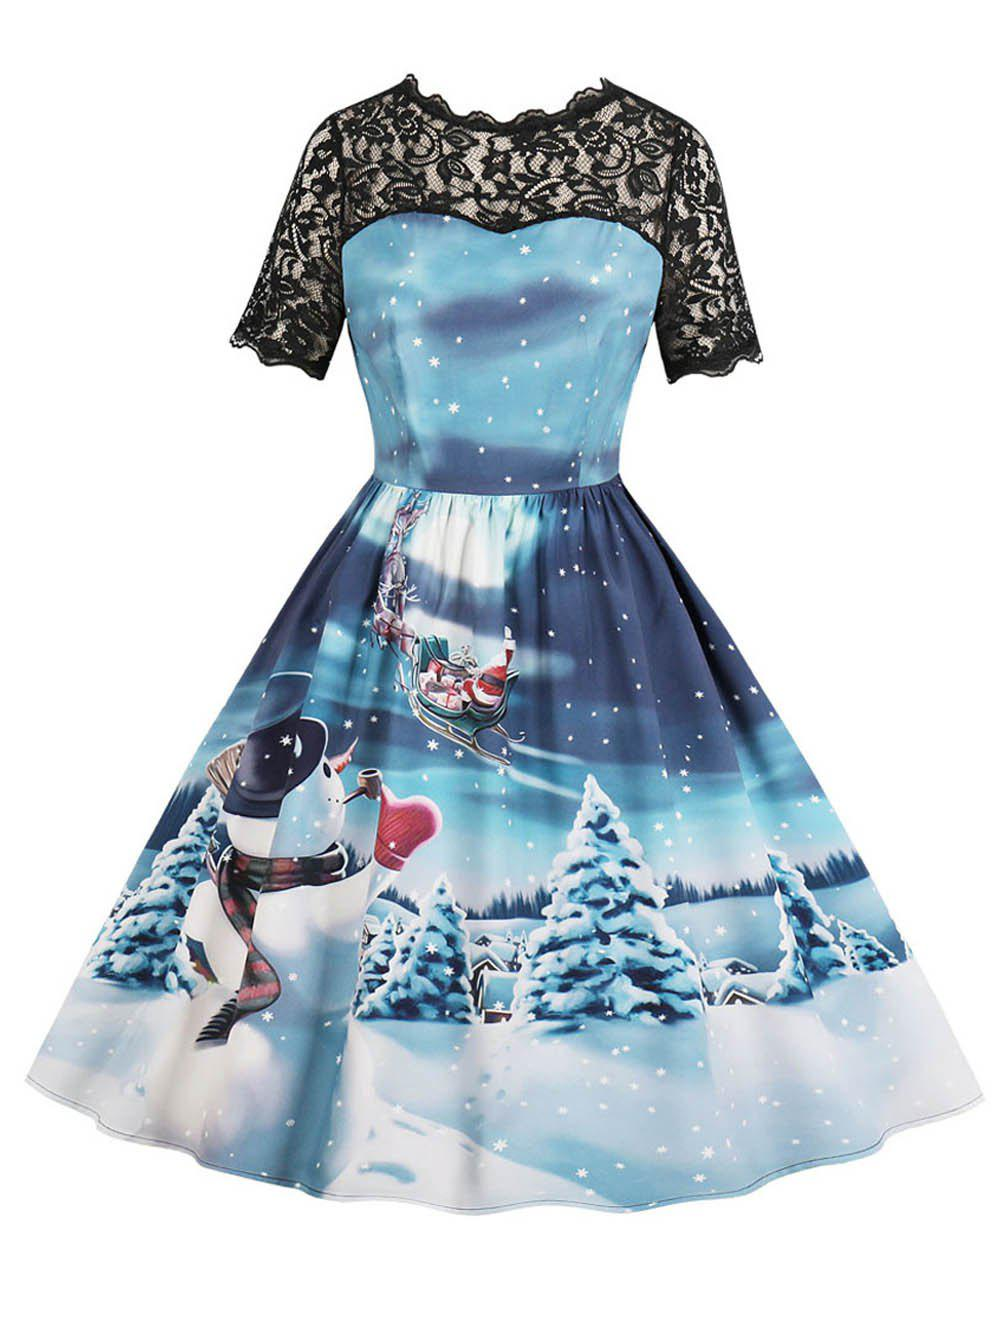 Outfit Hepburn Vintage Series Women Dress Spring And Summer Round Neck Christmas Printing Lace-stitching Design Sleeveless Corset Dress